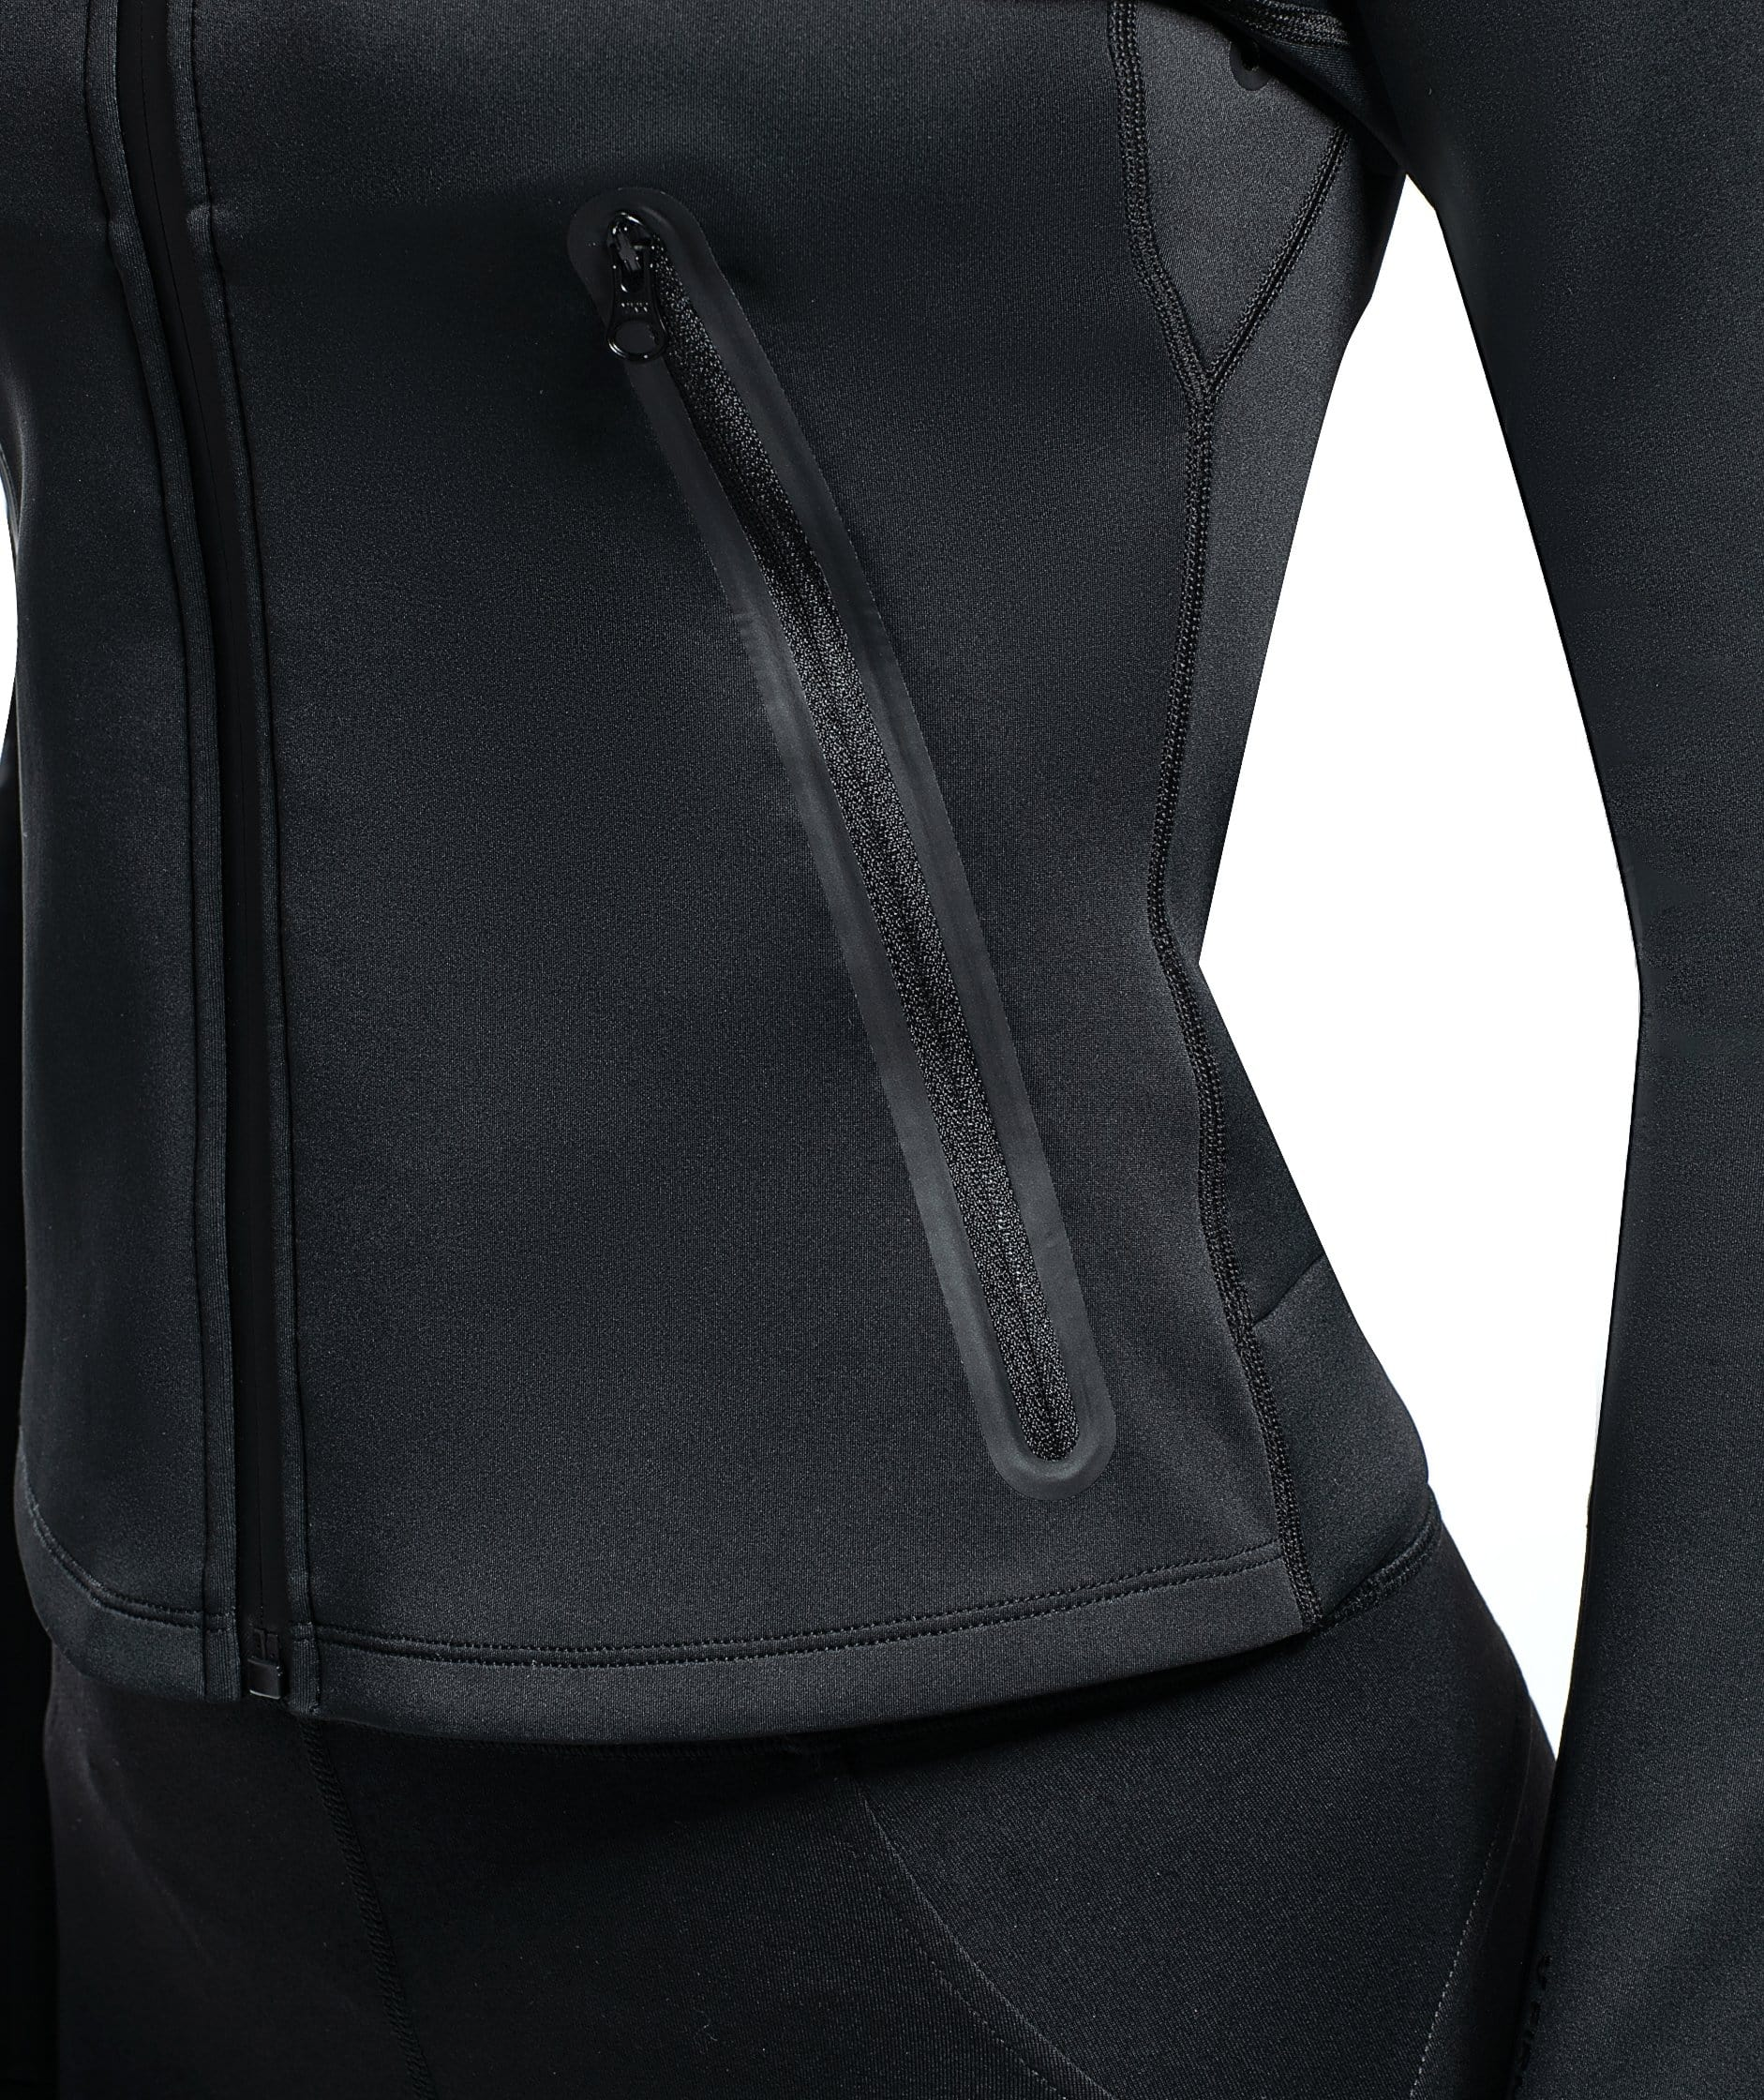 IACG Lightweight Jacket - Firm Abs Fitness